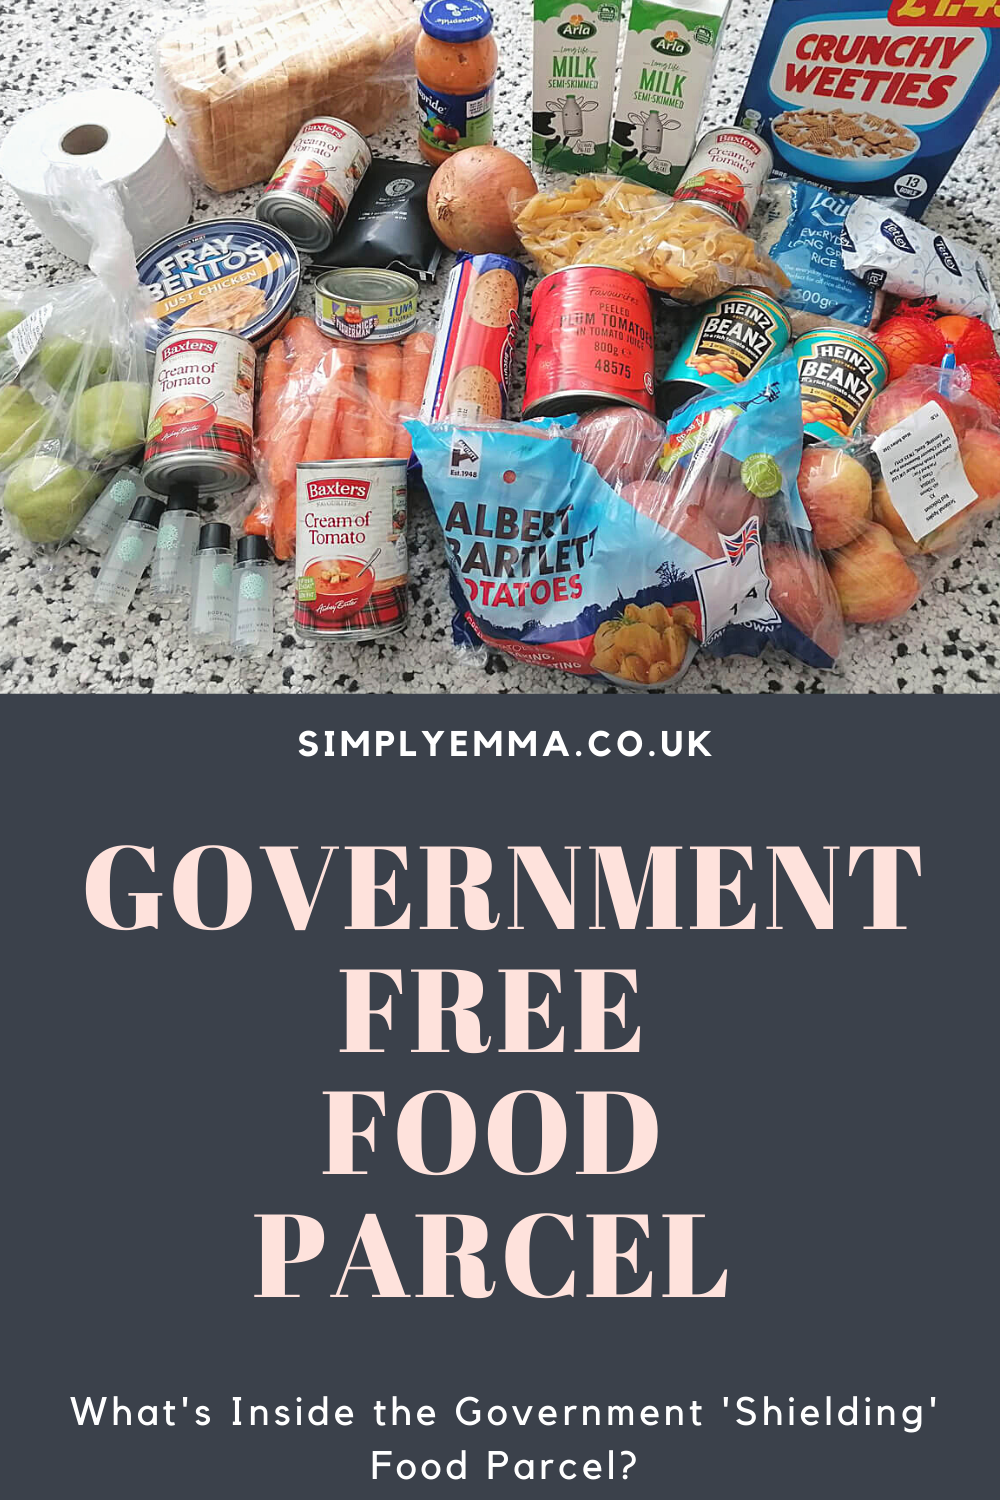 What's Inside the Government 'Shielding' Food Parcel?